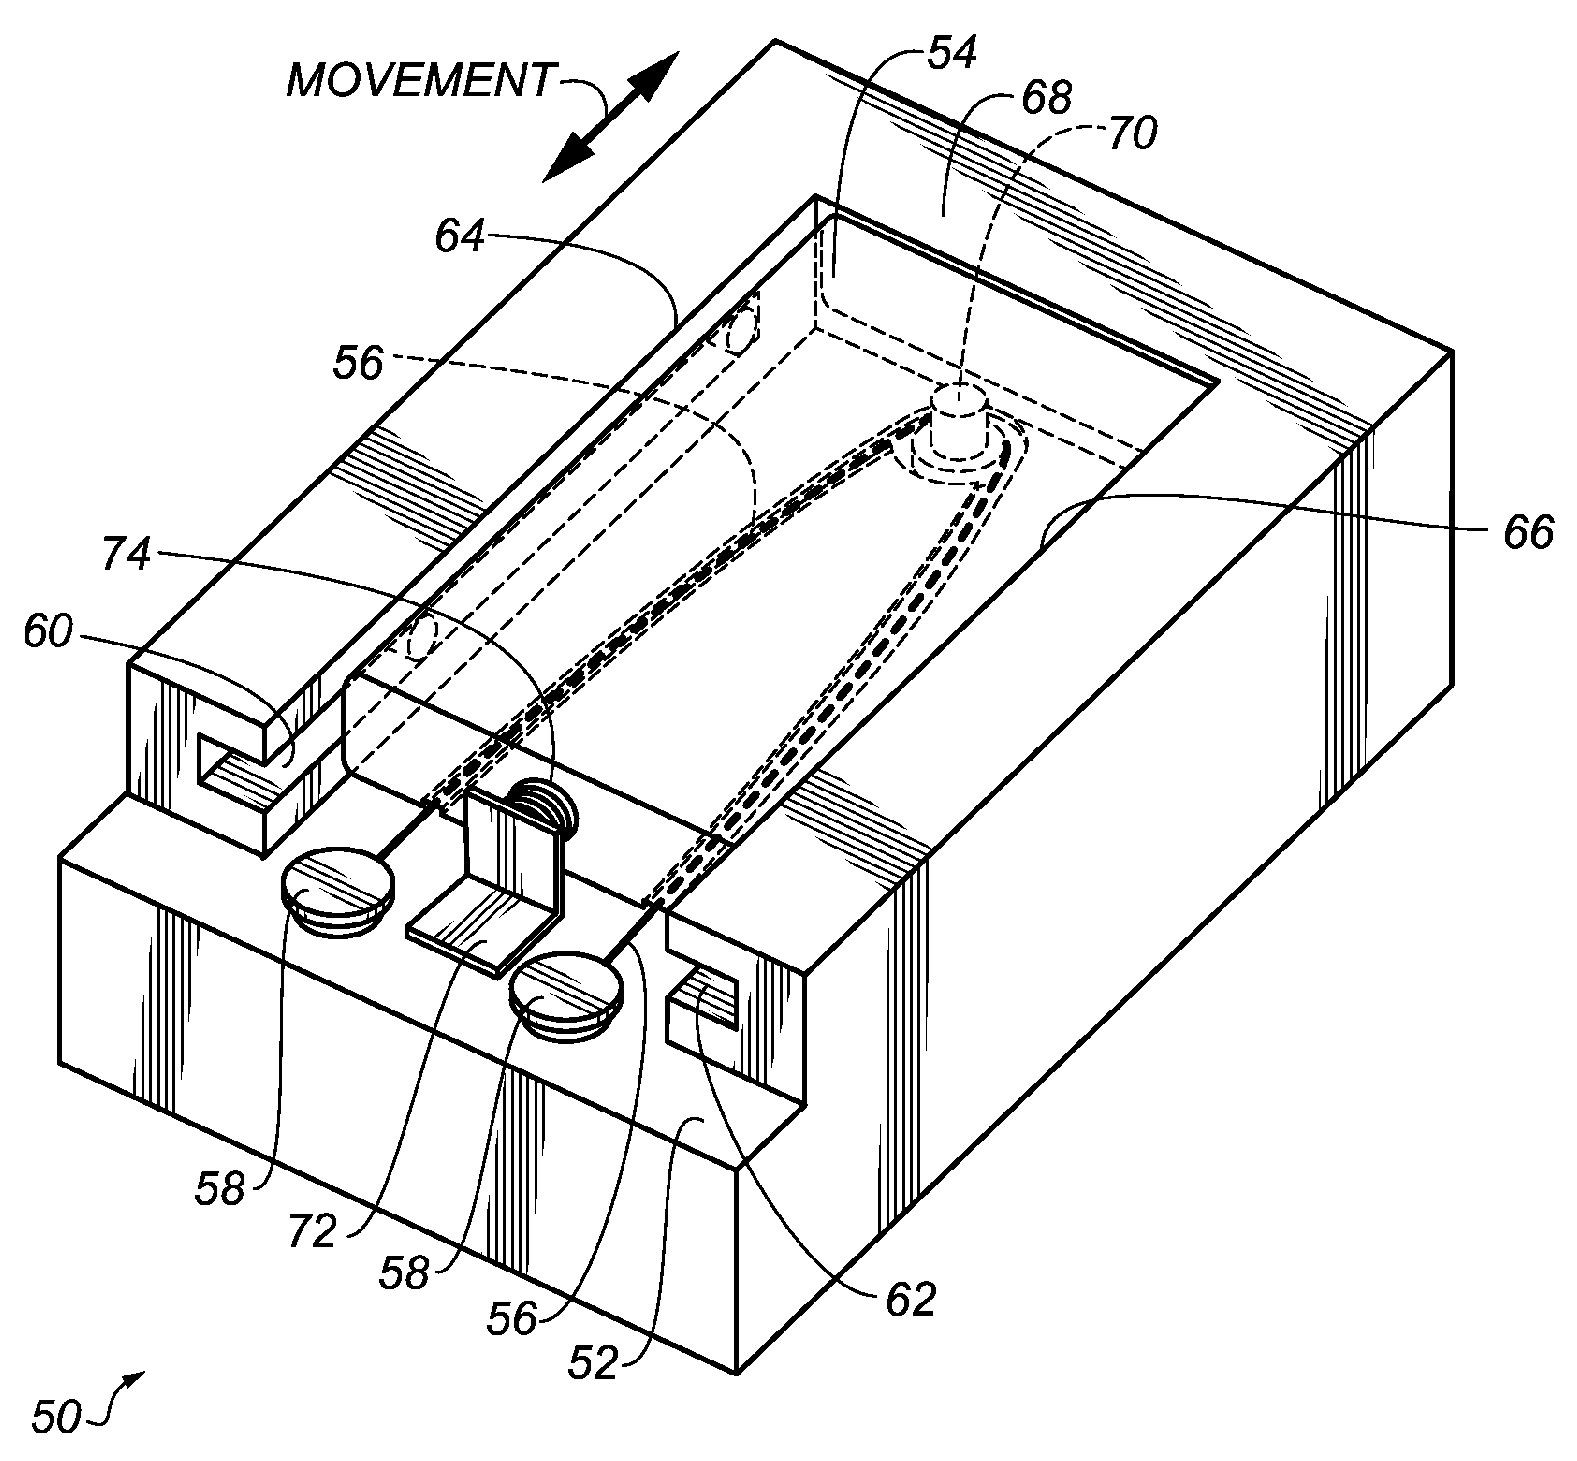 New Apple invention would employ multi-axis haptic